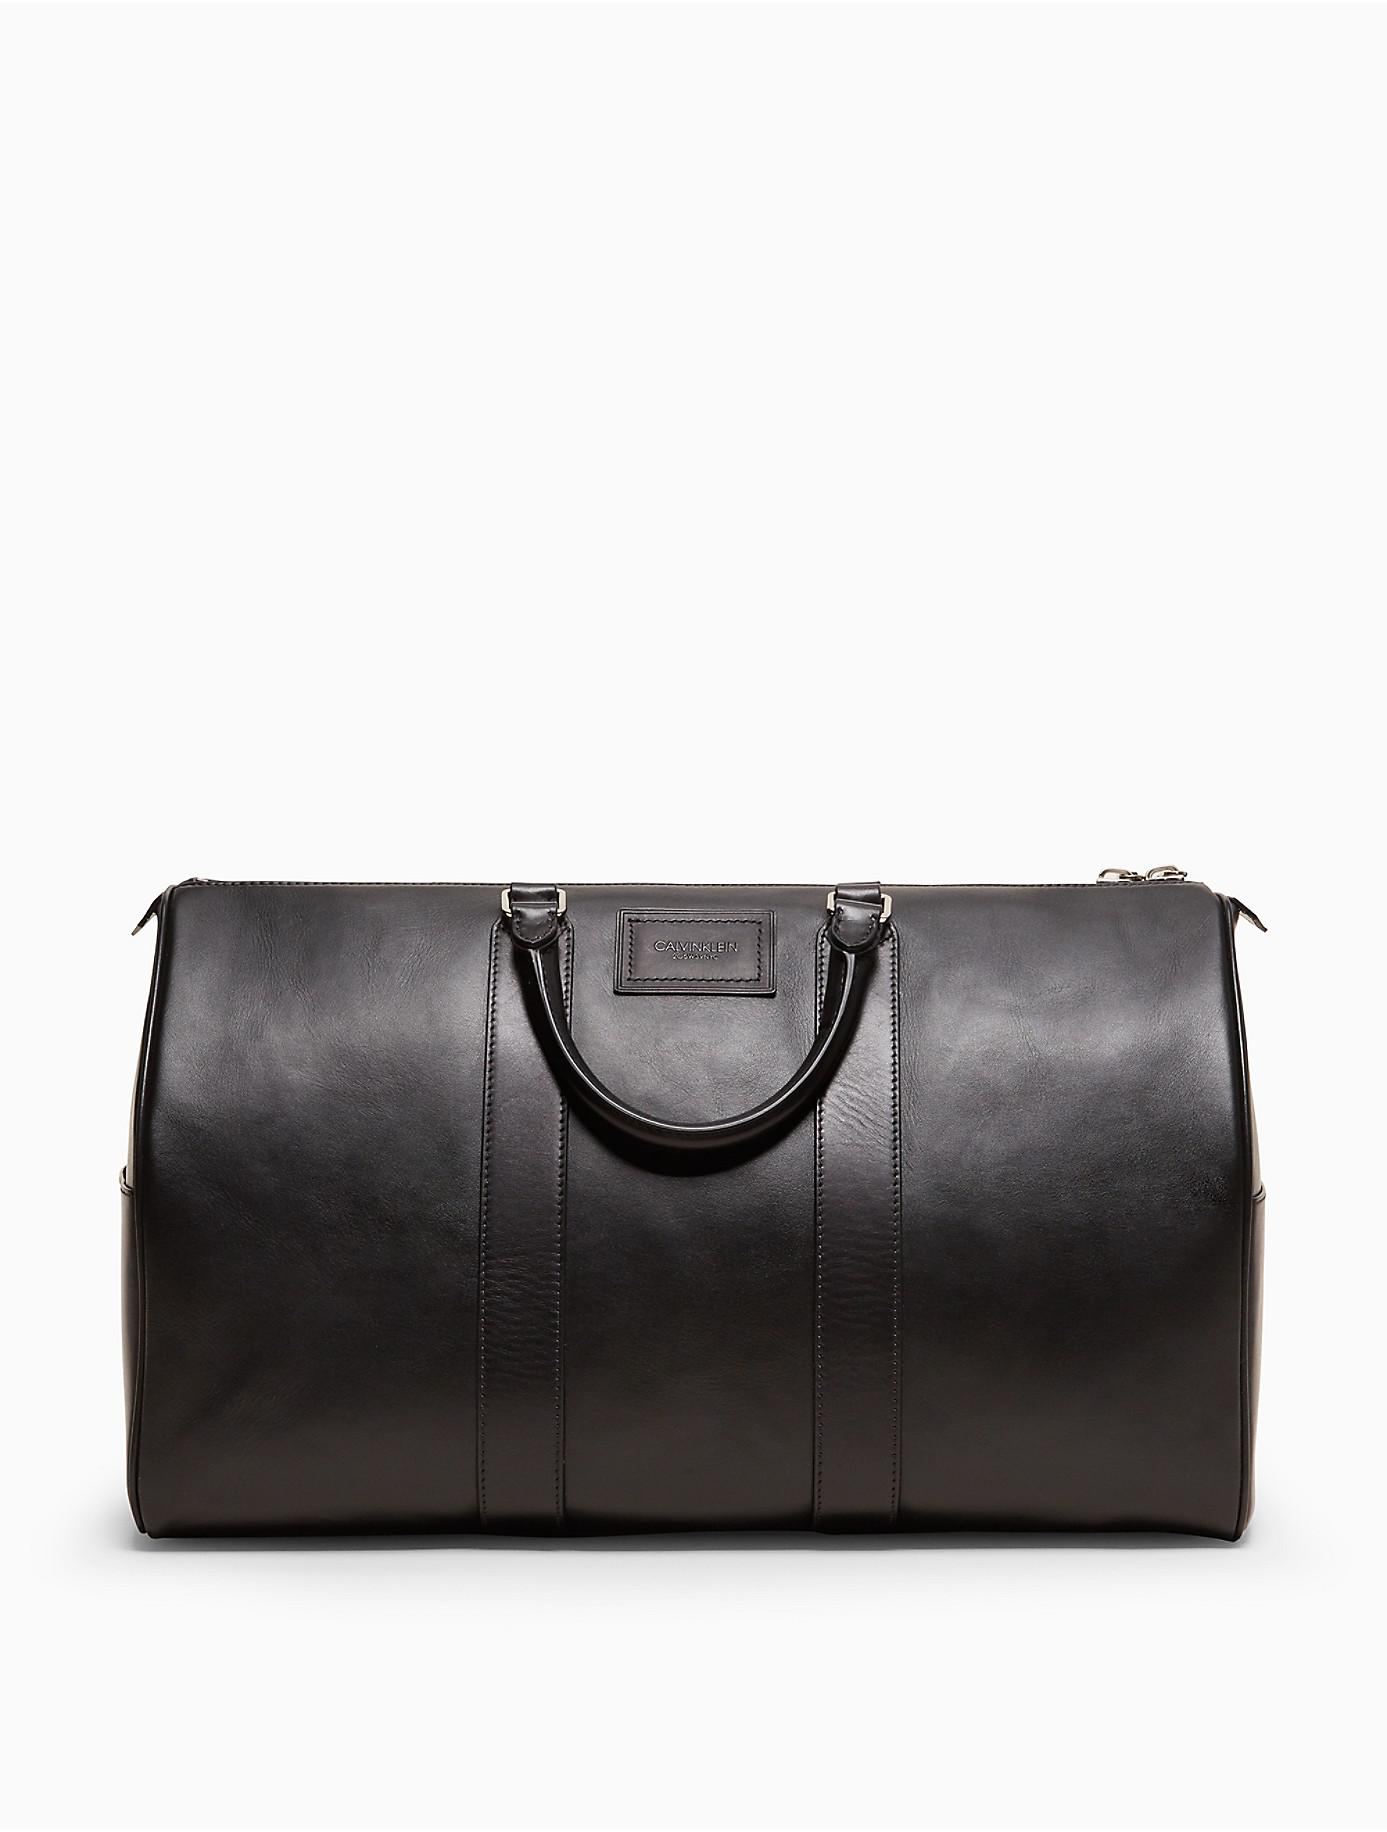 6394724f8d25 Lyst - Calvin Klein 205W39Nyc Luxe Calf Duffle in Black for Men